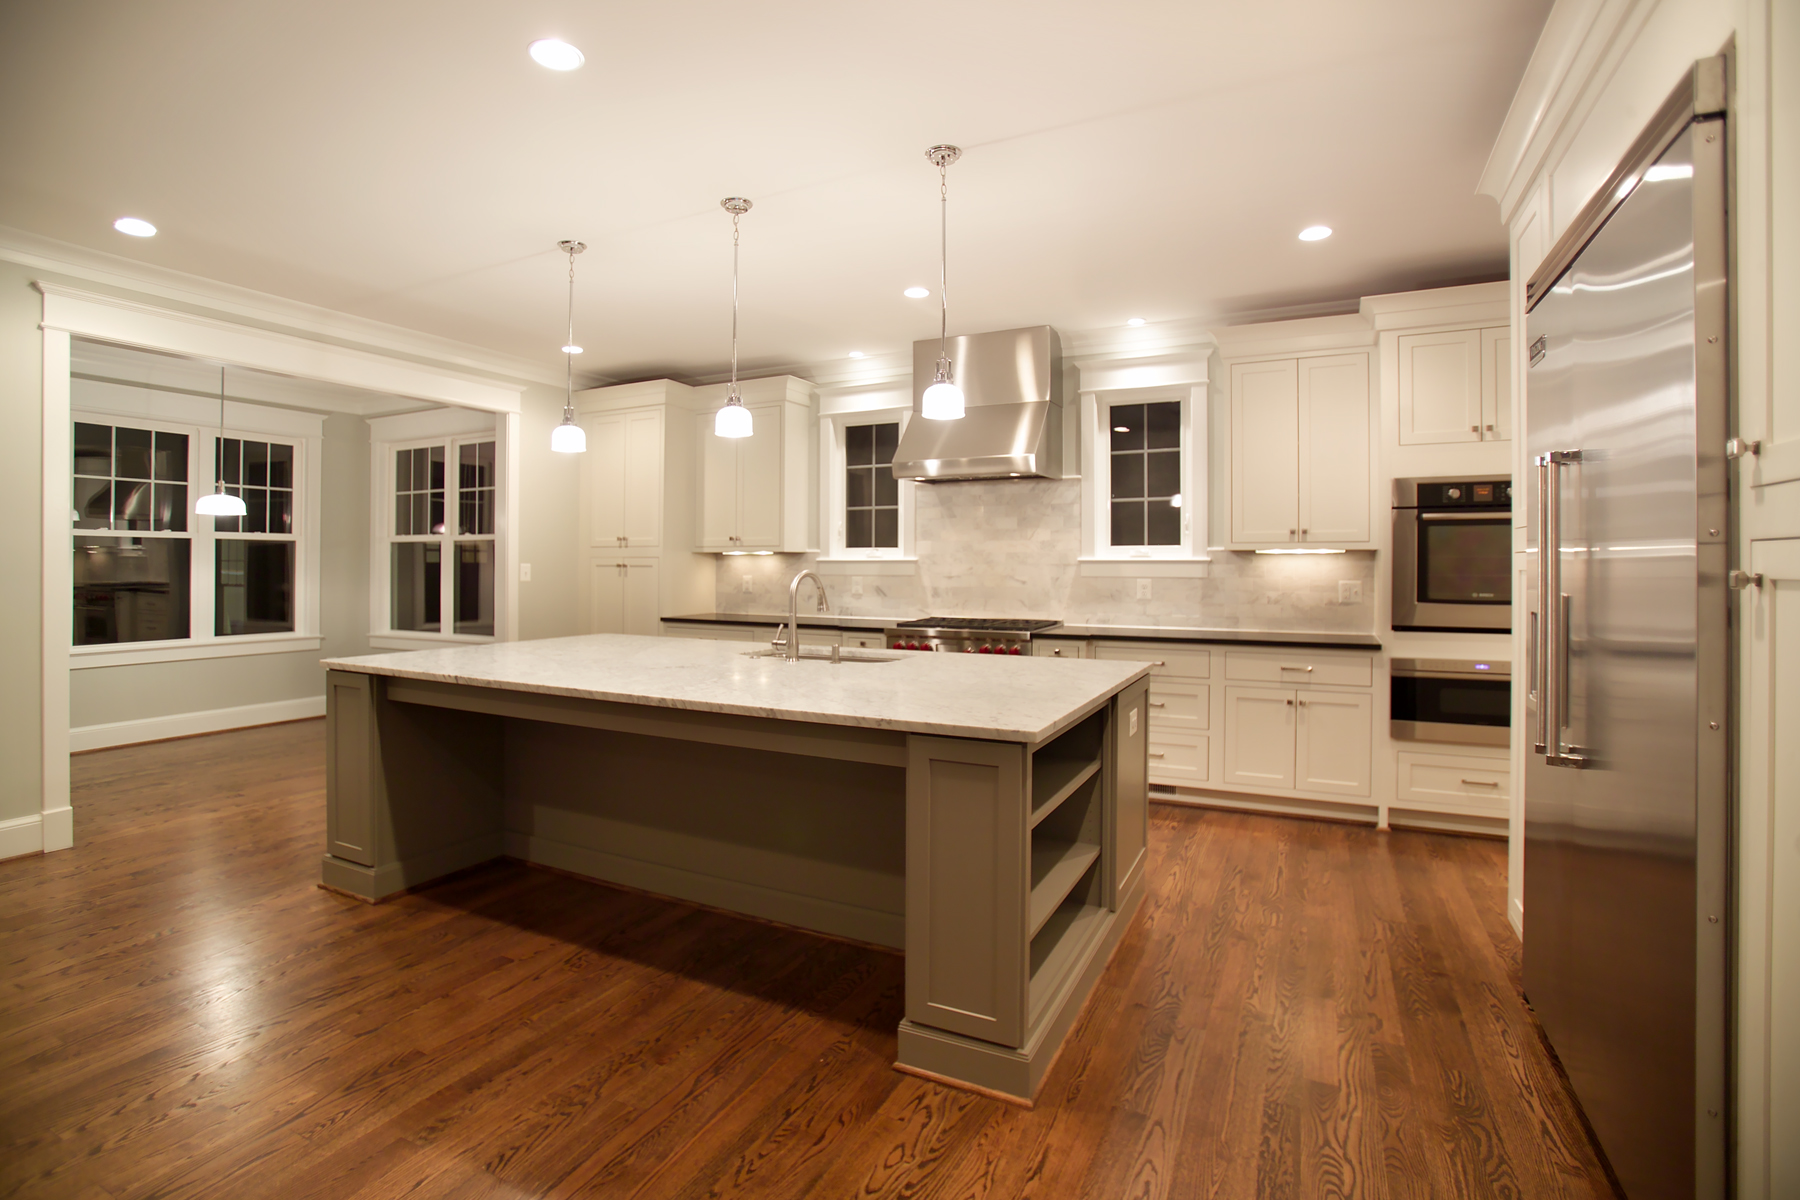 Kitchen 5 - Overall View to Breakfast Area at night.jpg